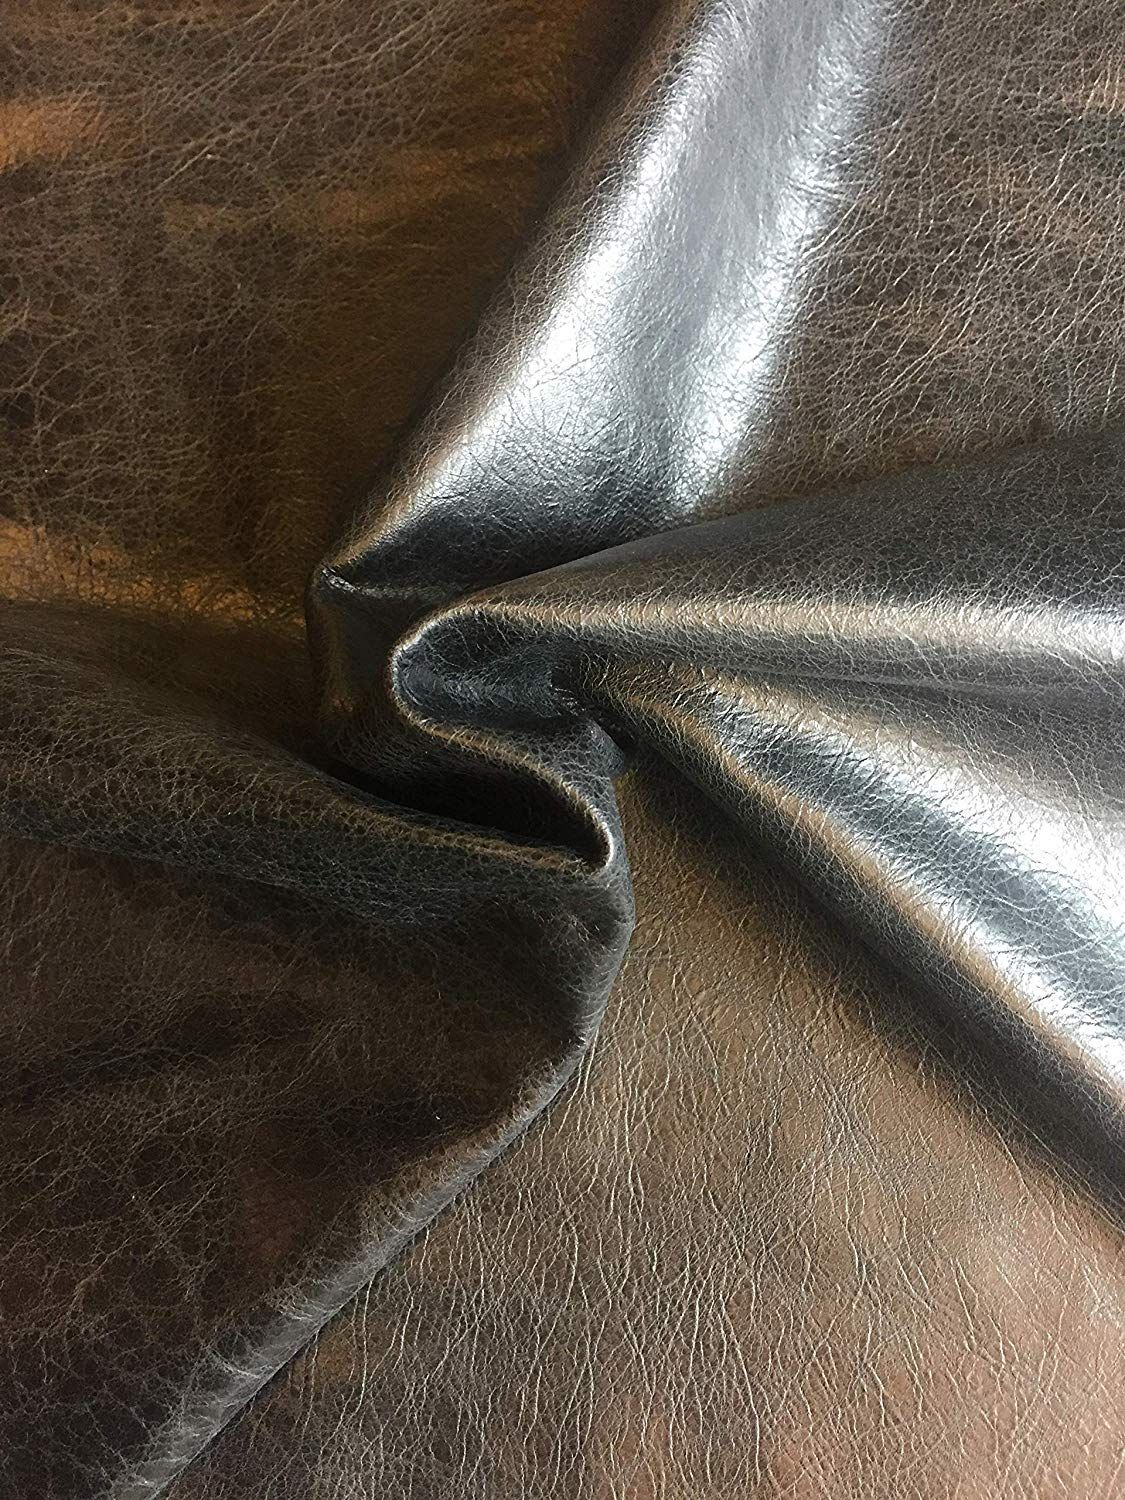 Black Leather Hide Spanish Full Skin Rustic Finish 2 Oz Avg Thickness Soft Upholstery Fabric Genuine Thi Leather Decor Leather Decor Diy Fabric Decor